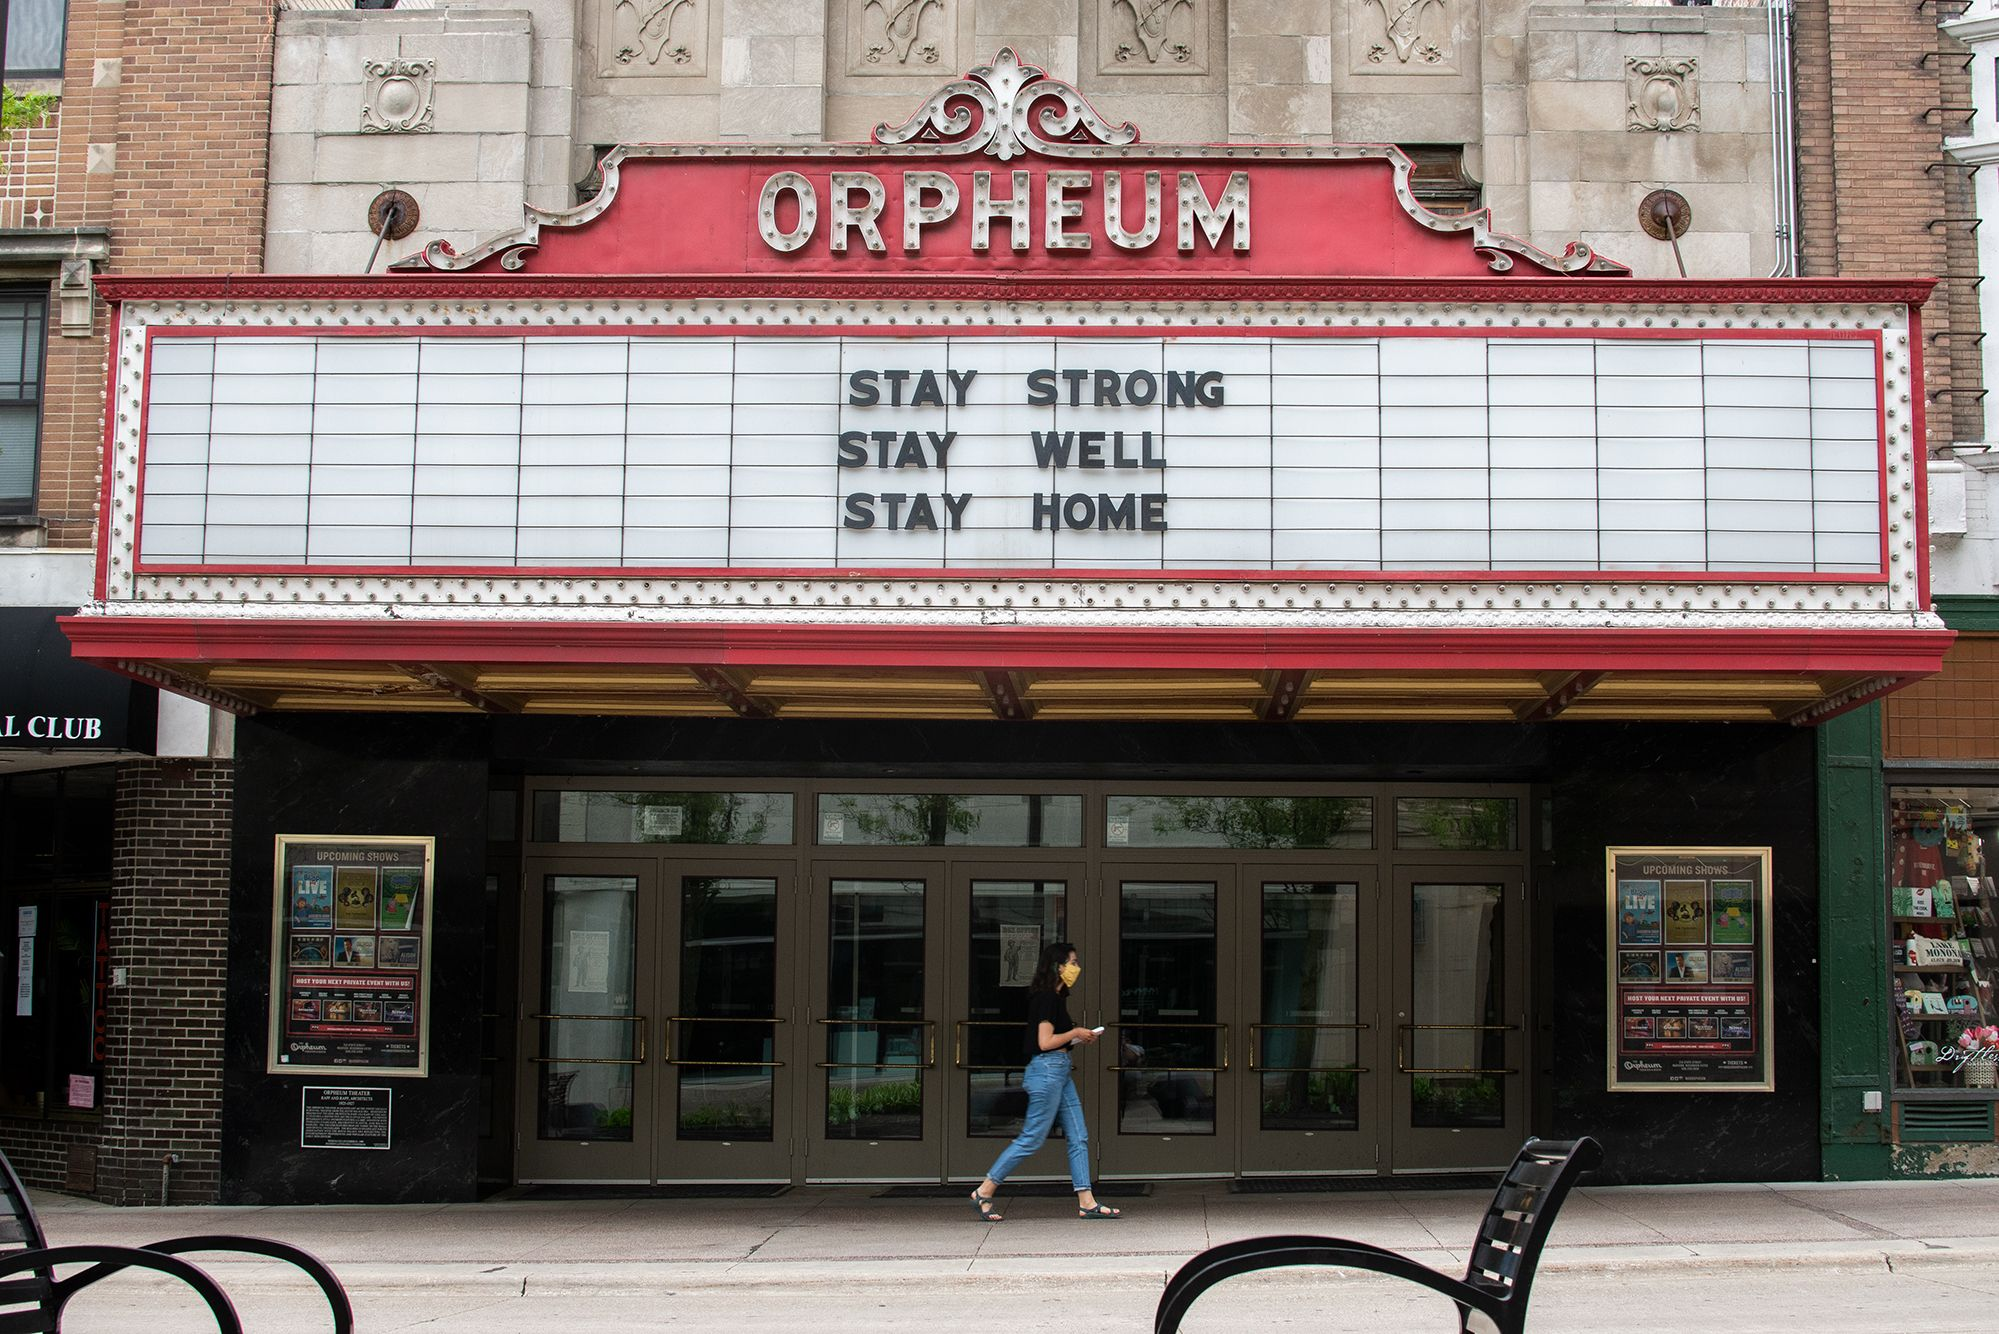 Local businesses in Madison, Wisconsin prepared to reopen on May 26, 2020. The Orpheum Theater on State. Image by Lawrence Andrea. United States, 2020.